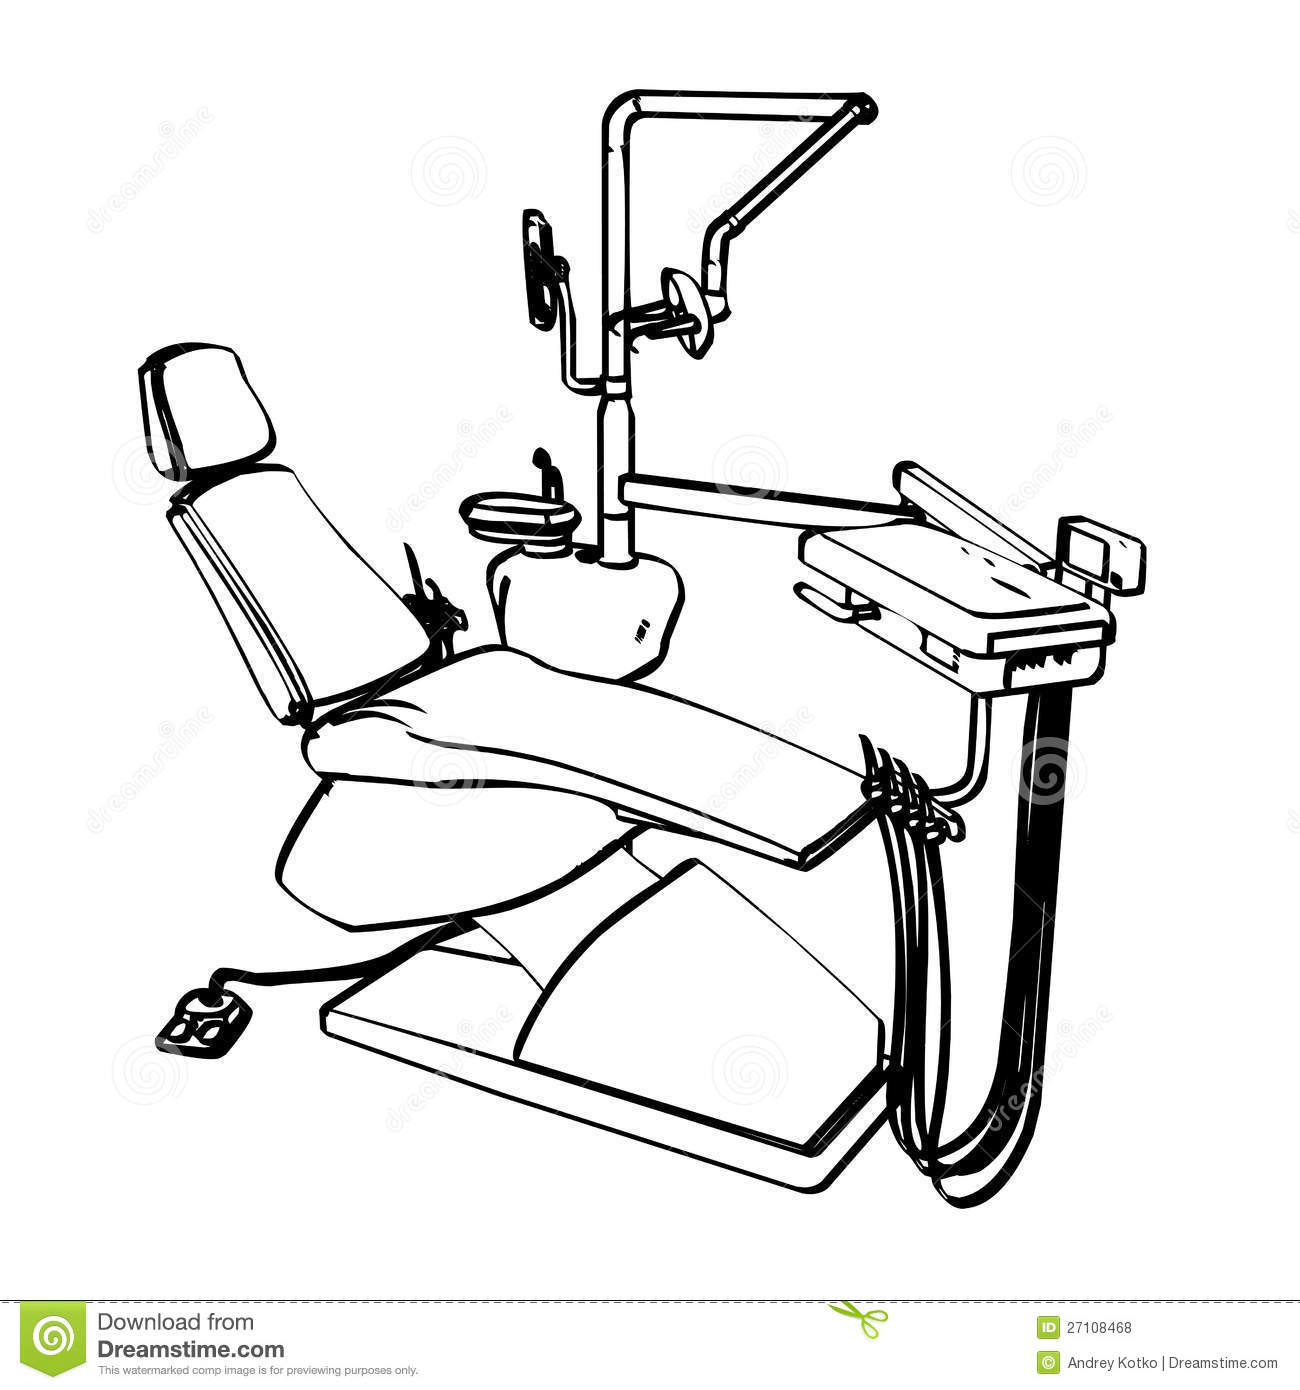 dentists chair royalty free stock photos image 27108468